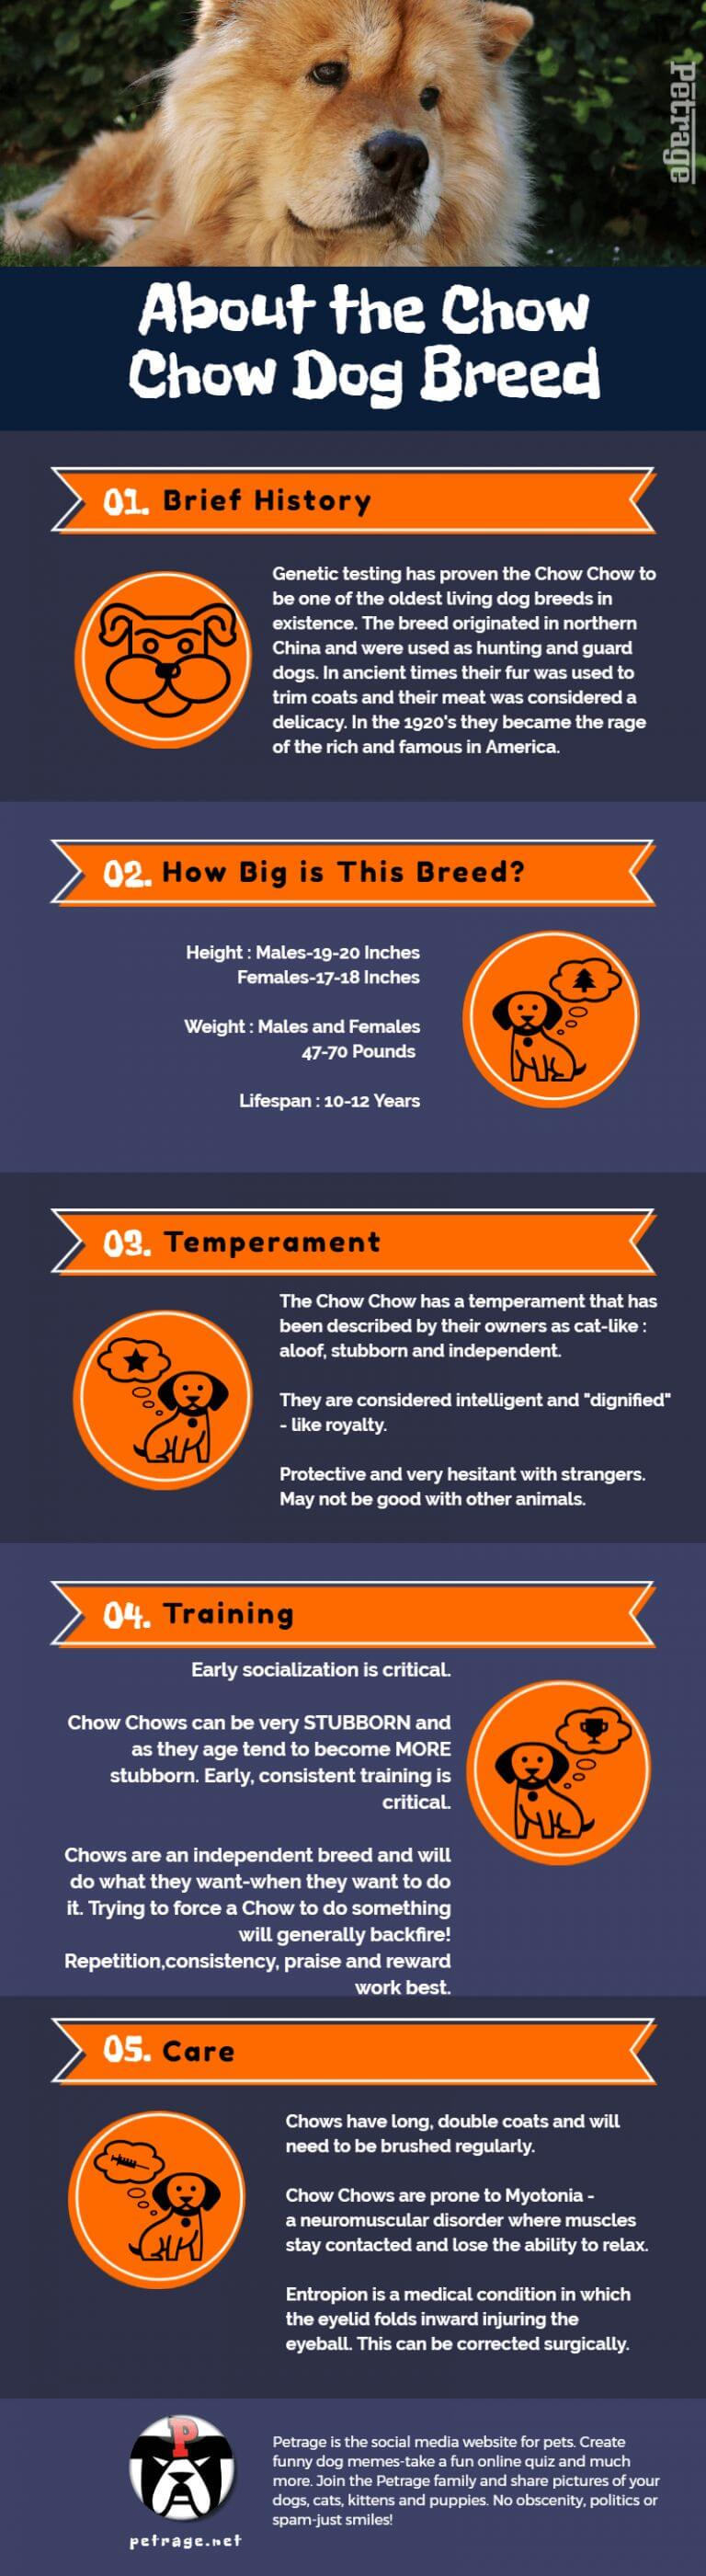 chow chow dog breed infographic petrage infographic dog breed